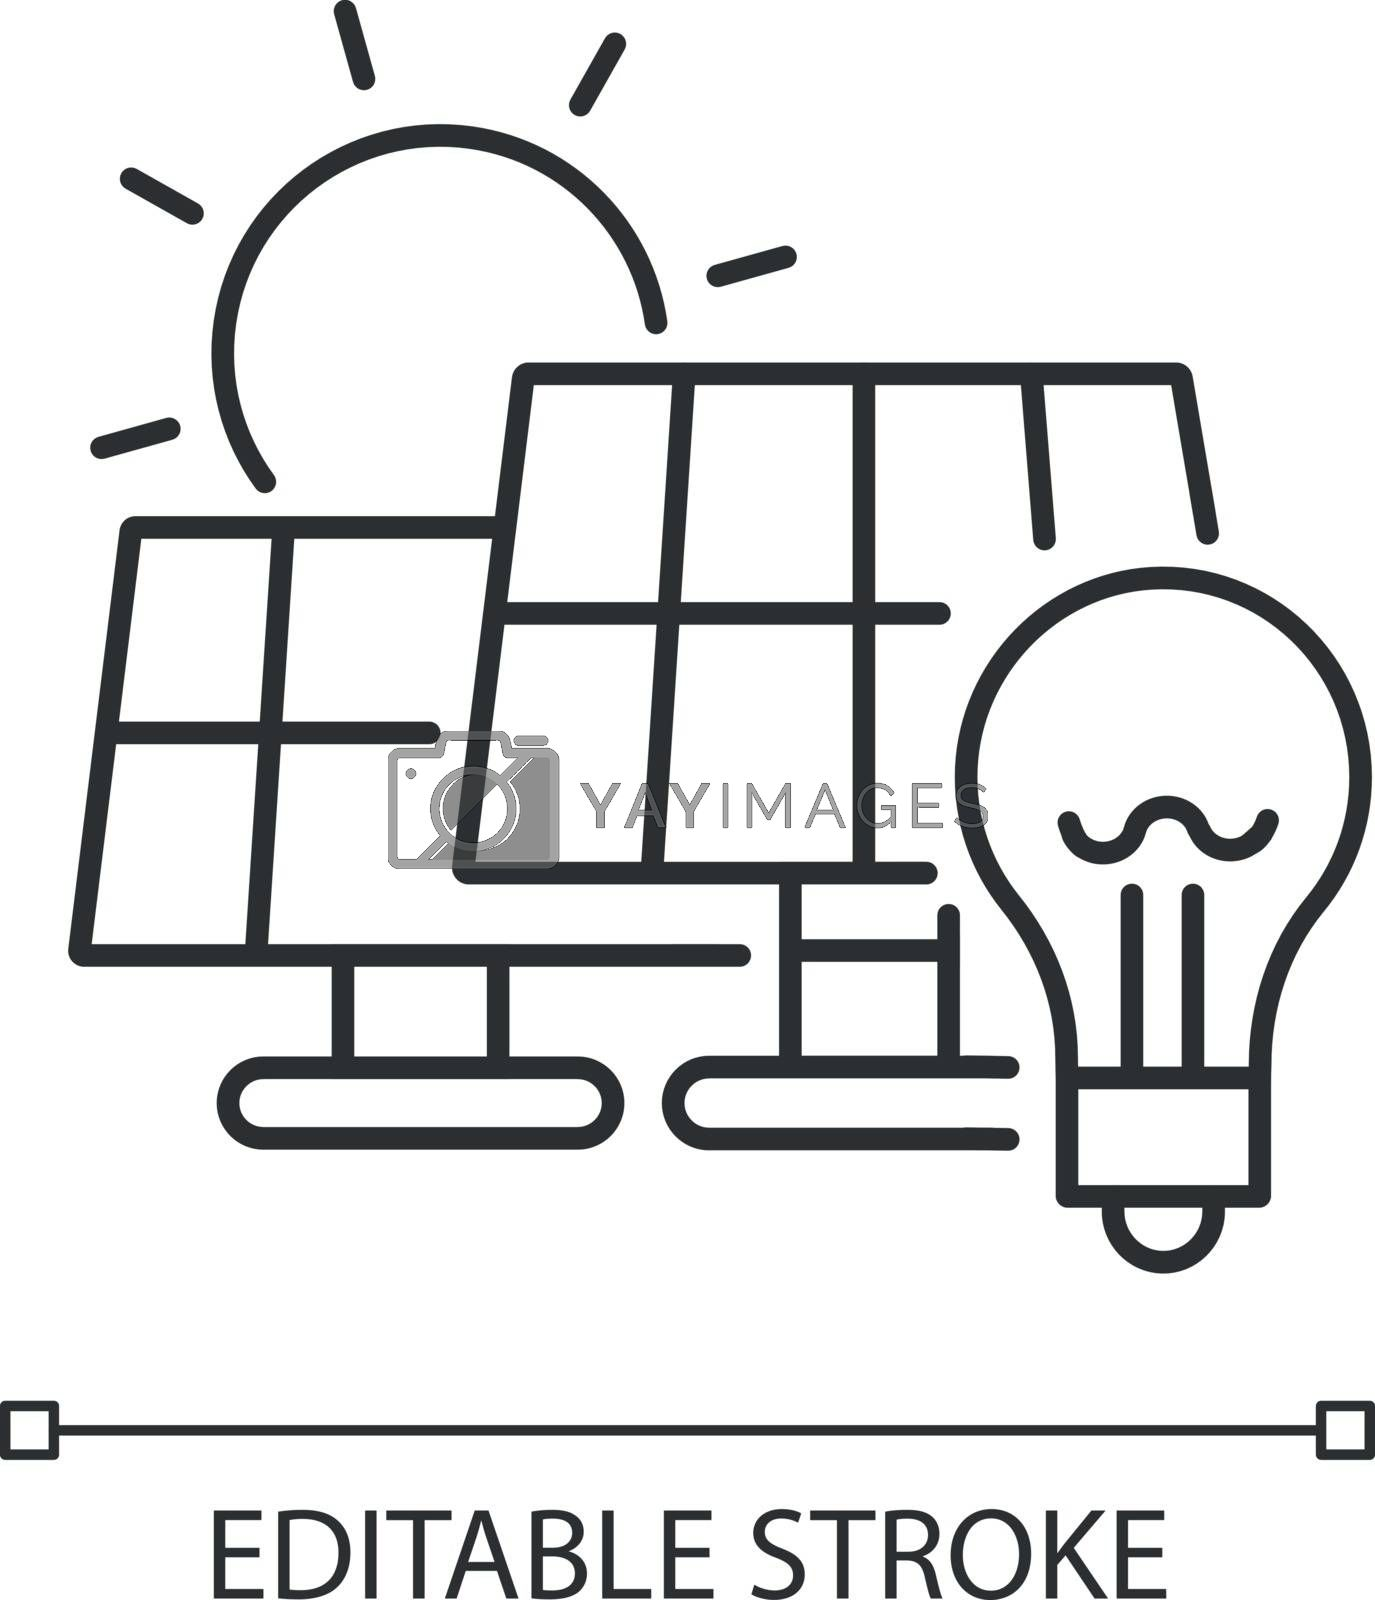 Solar power station linear icon. Renewable energy, alternative electricity manufacturing thin line customizable illustration. Contour symbol. Vector isolated outline drawing. Editable stroke